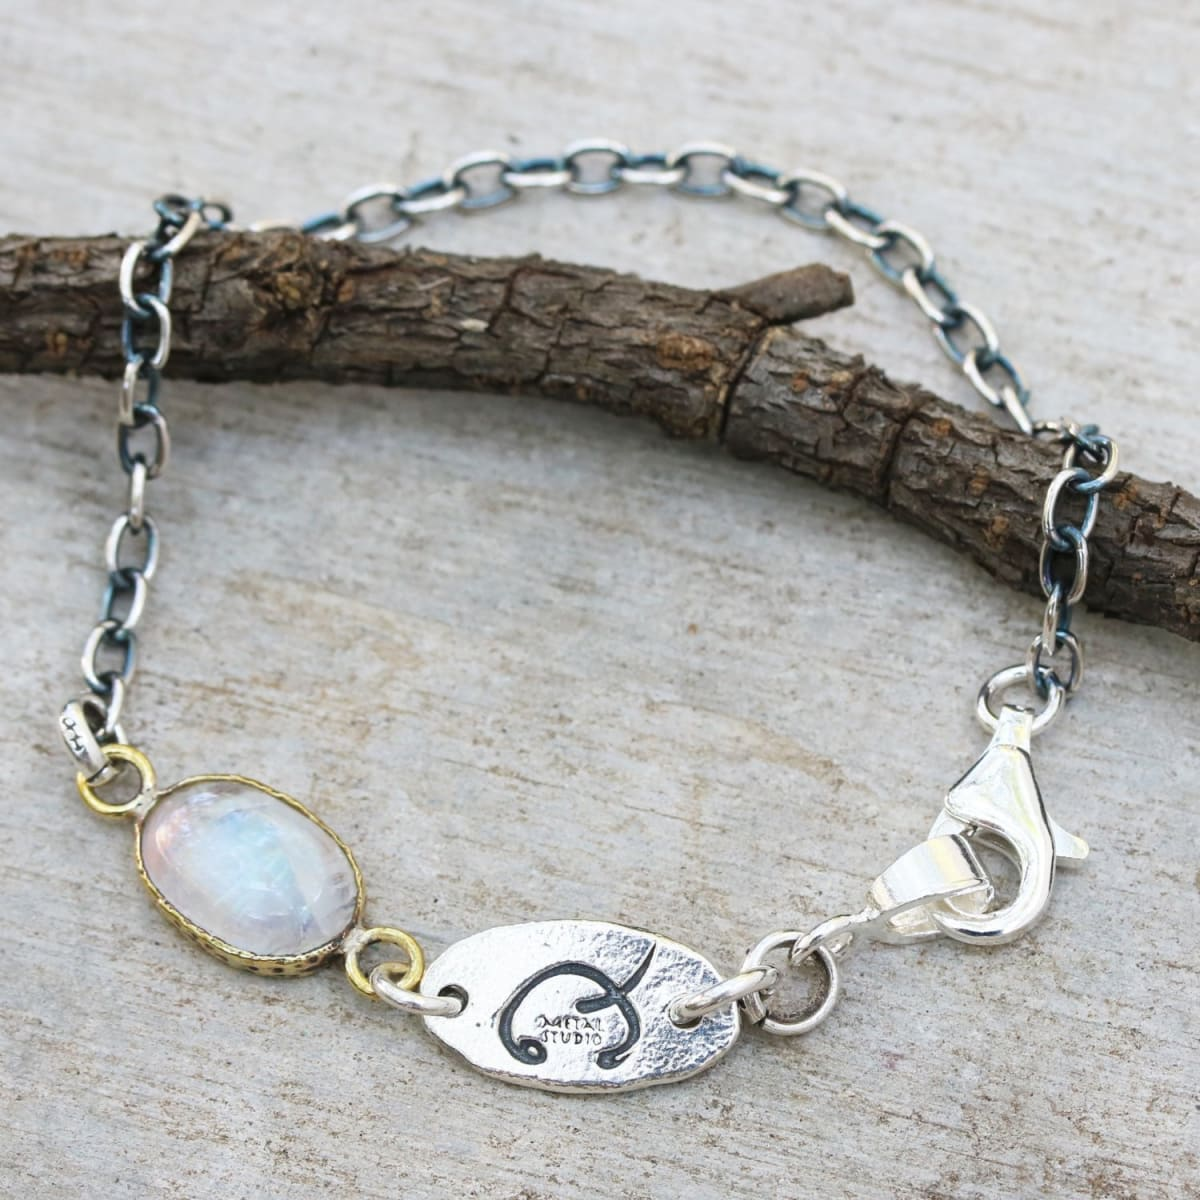 Bracelet oval cabochon moonstone in brass bezel setting and oxidized sterling silver chain FBA